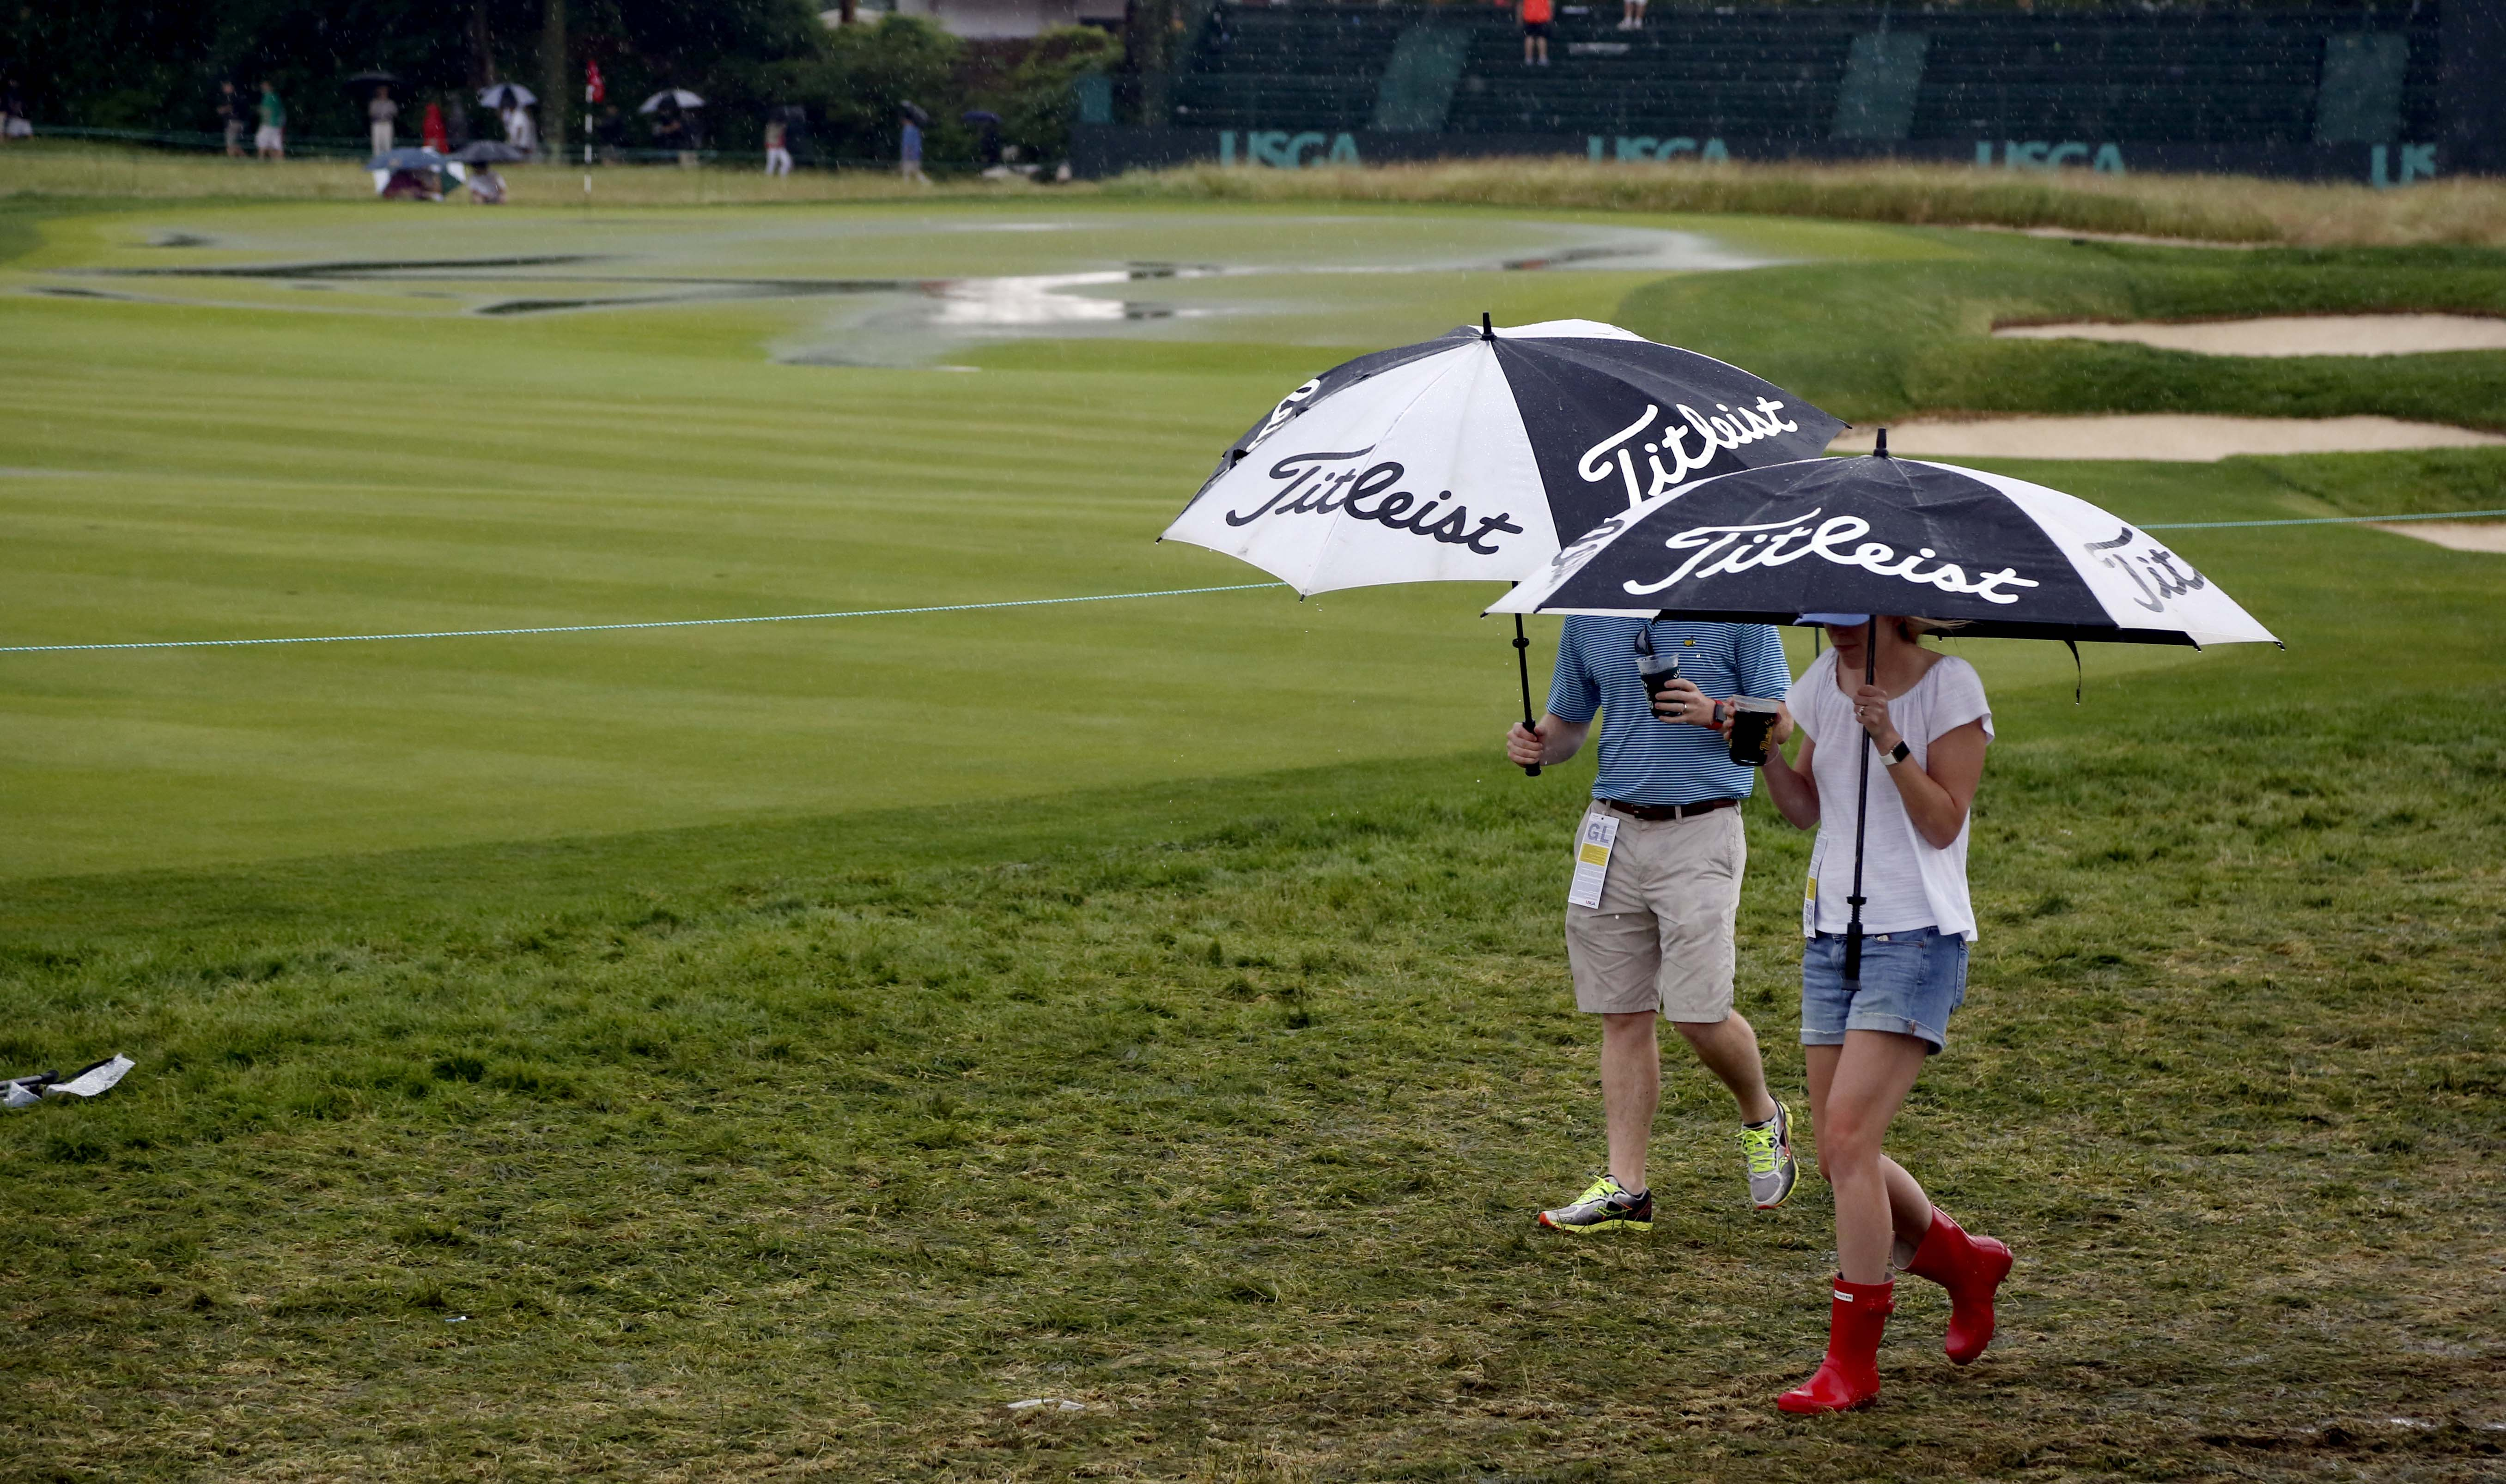 Fans leave the course during a rain delay in the first round of the U.S. Open golf championship at Oakmont Country Club on Thursday, June 16, 2016, in Oakmont, Pa. (AP Photo/Gene J. Puskar)